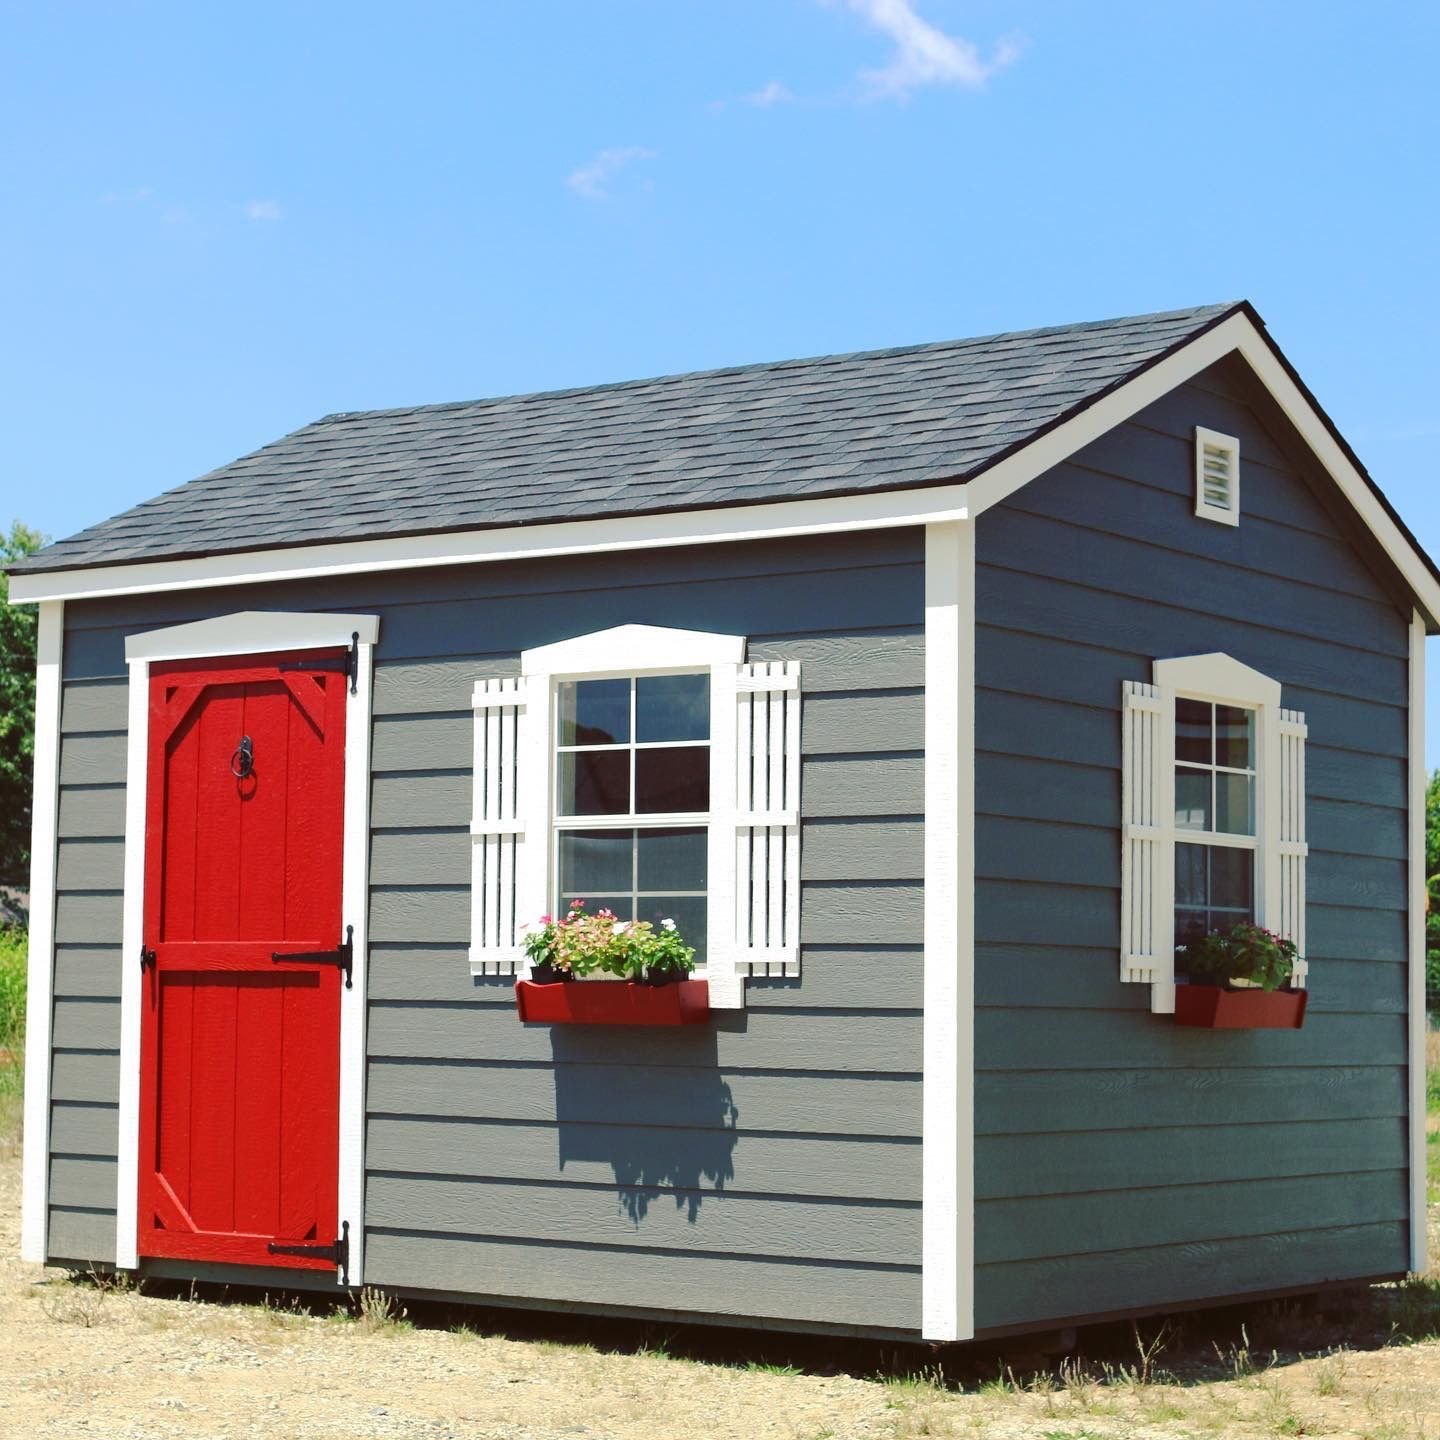 Sheds By Design Shed With Red Barn Door Red Barn Door Shed Painted Garden Sheds